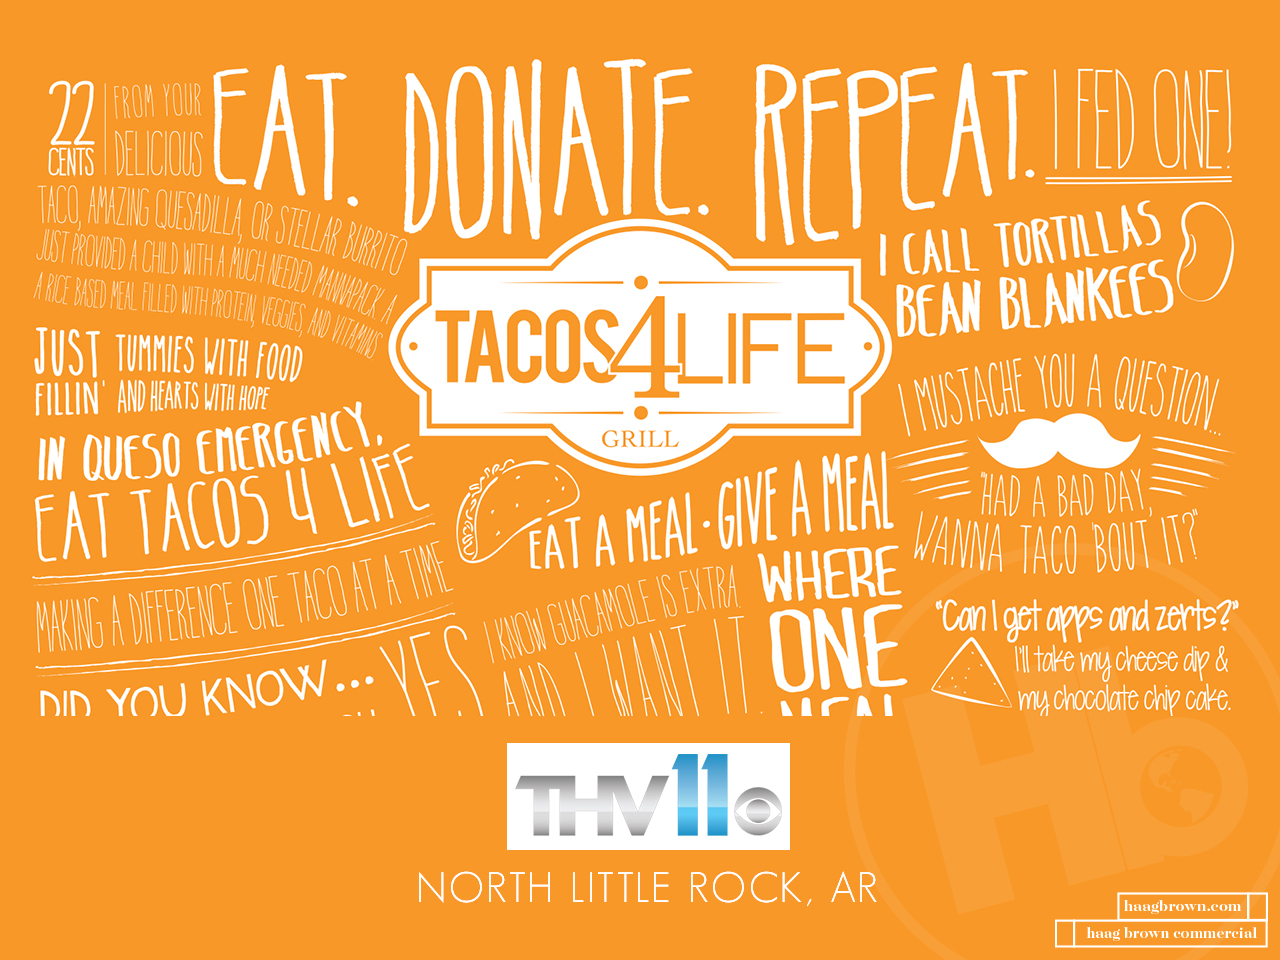 Tacos 4 Life Announces New Location in North Little Rock